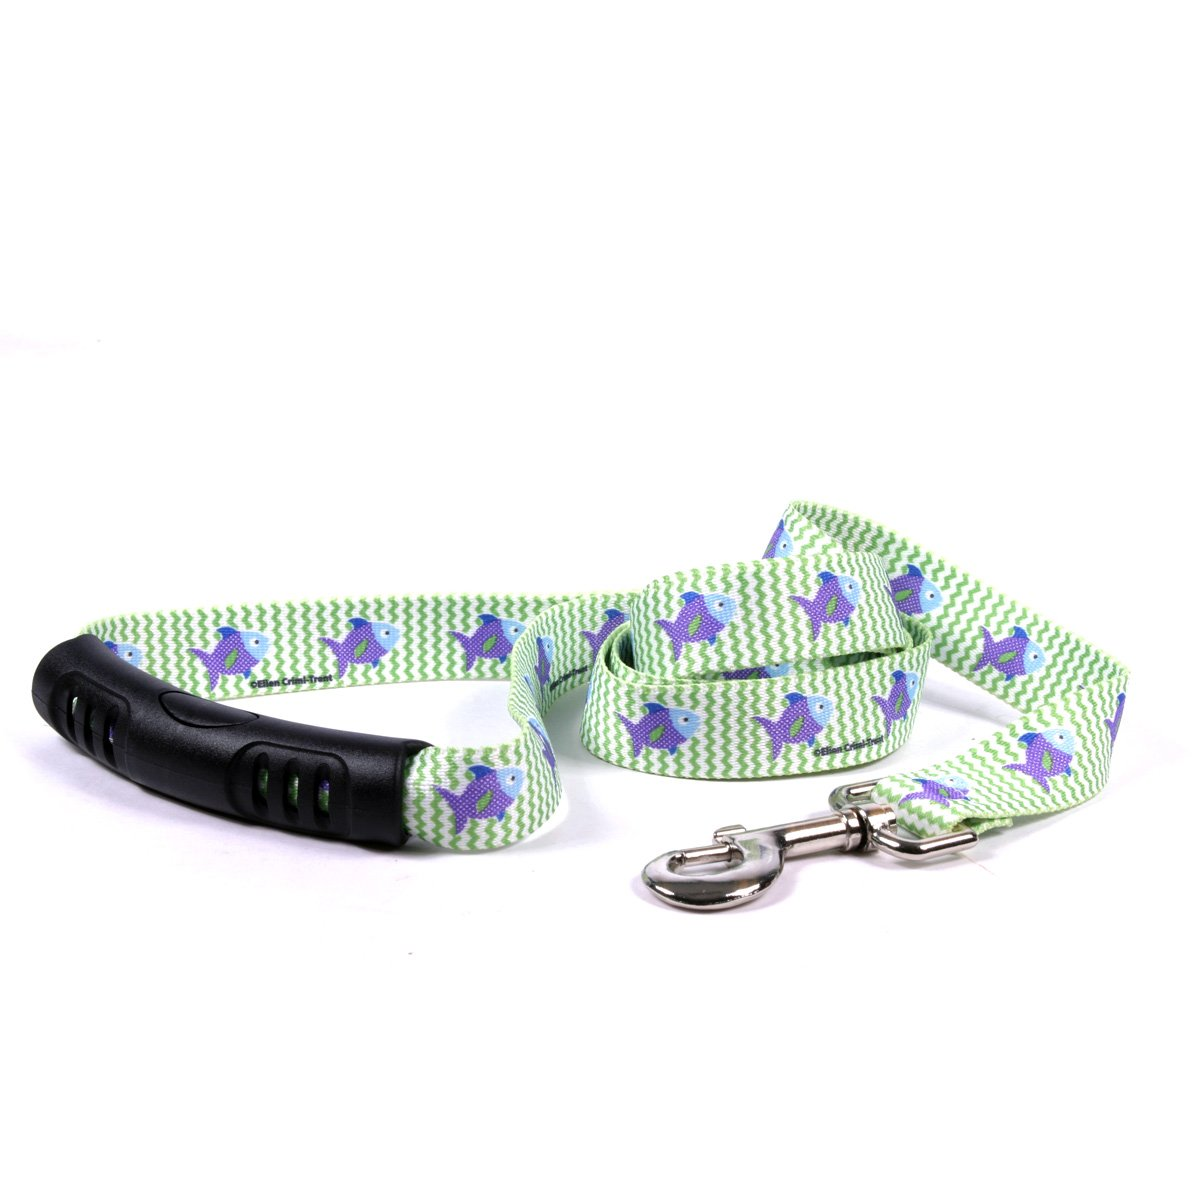 Yellow Dog Design Fish Tales Ez-Grip Dog Leash with